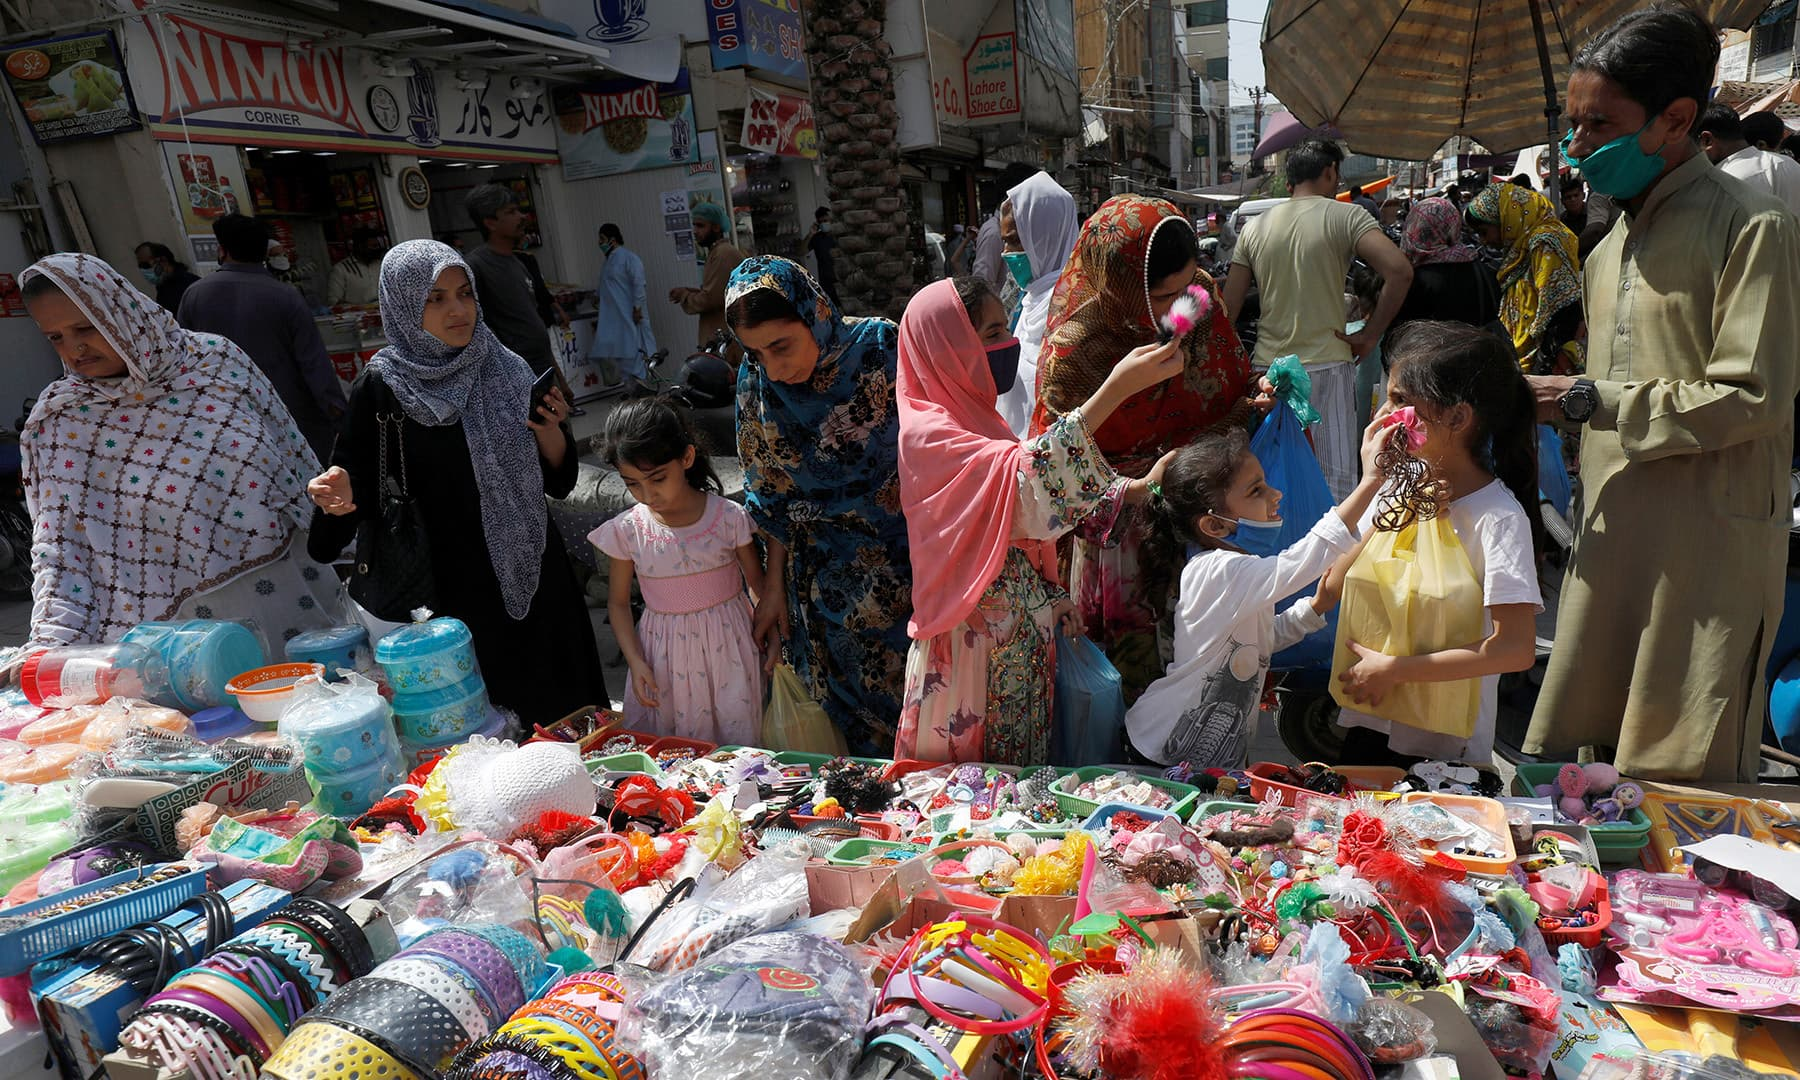 Women and children shop from a stall in a market in Karachi, May 11. — Reuters